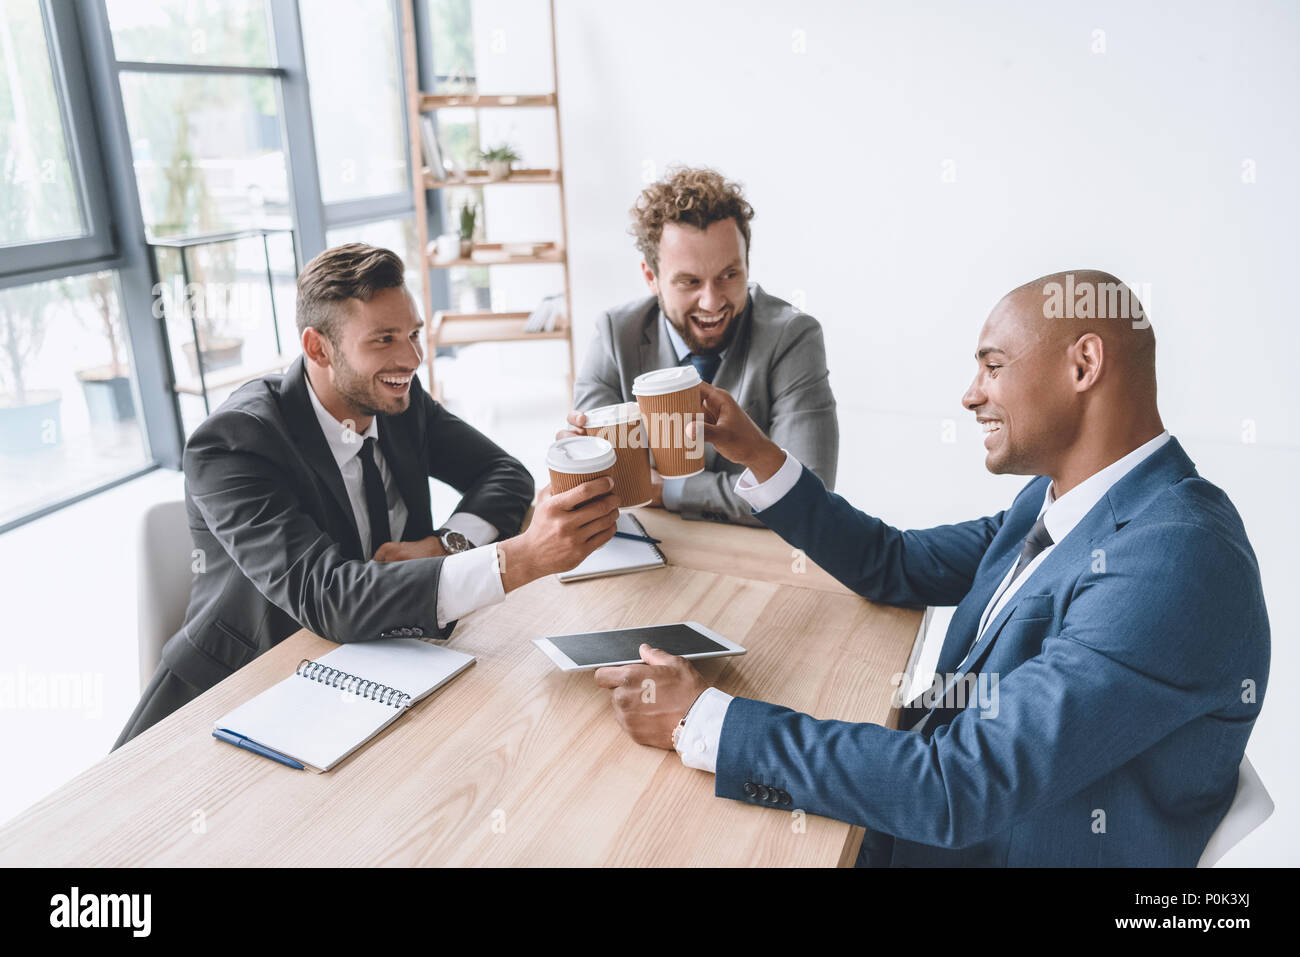 multicultural group of smiling businessmen clinking disposable cups of coffee at meeting - Stock Image